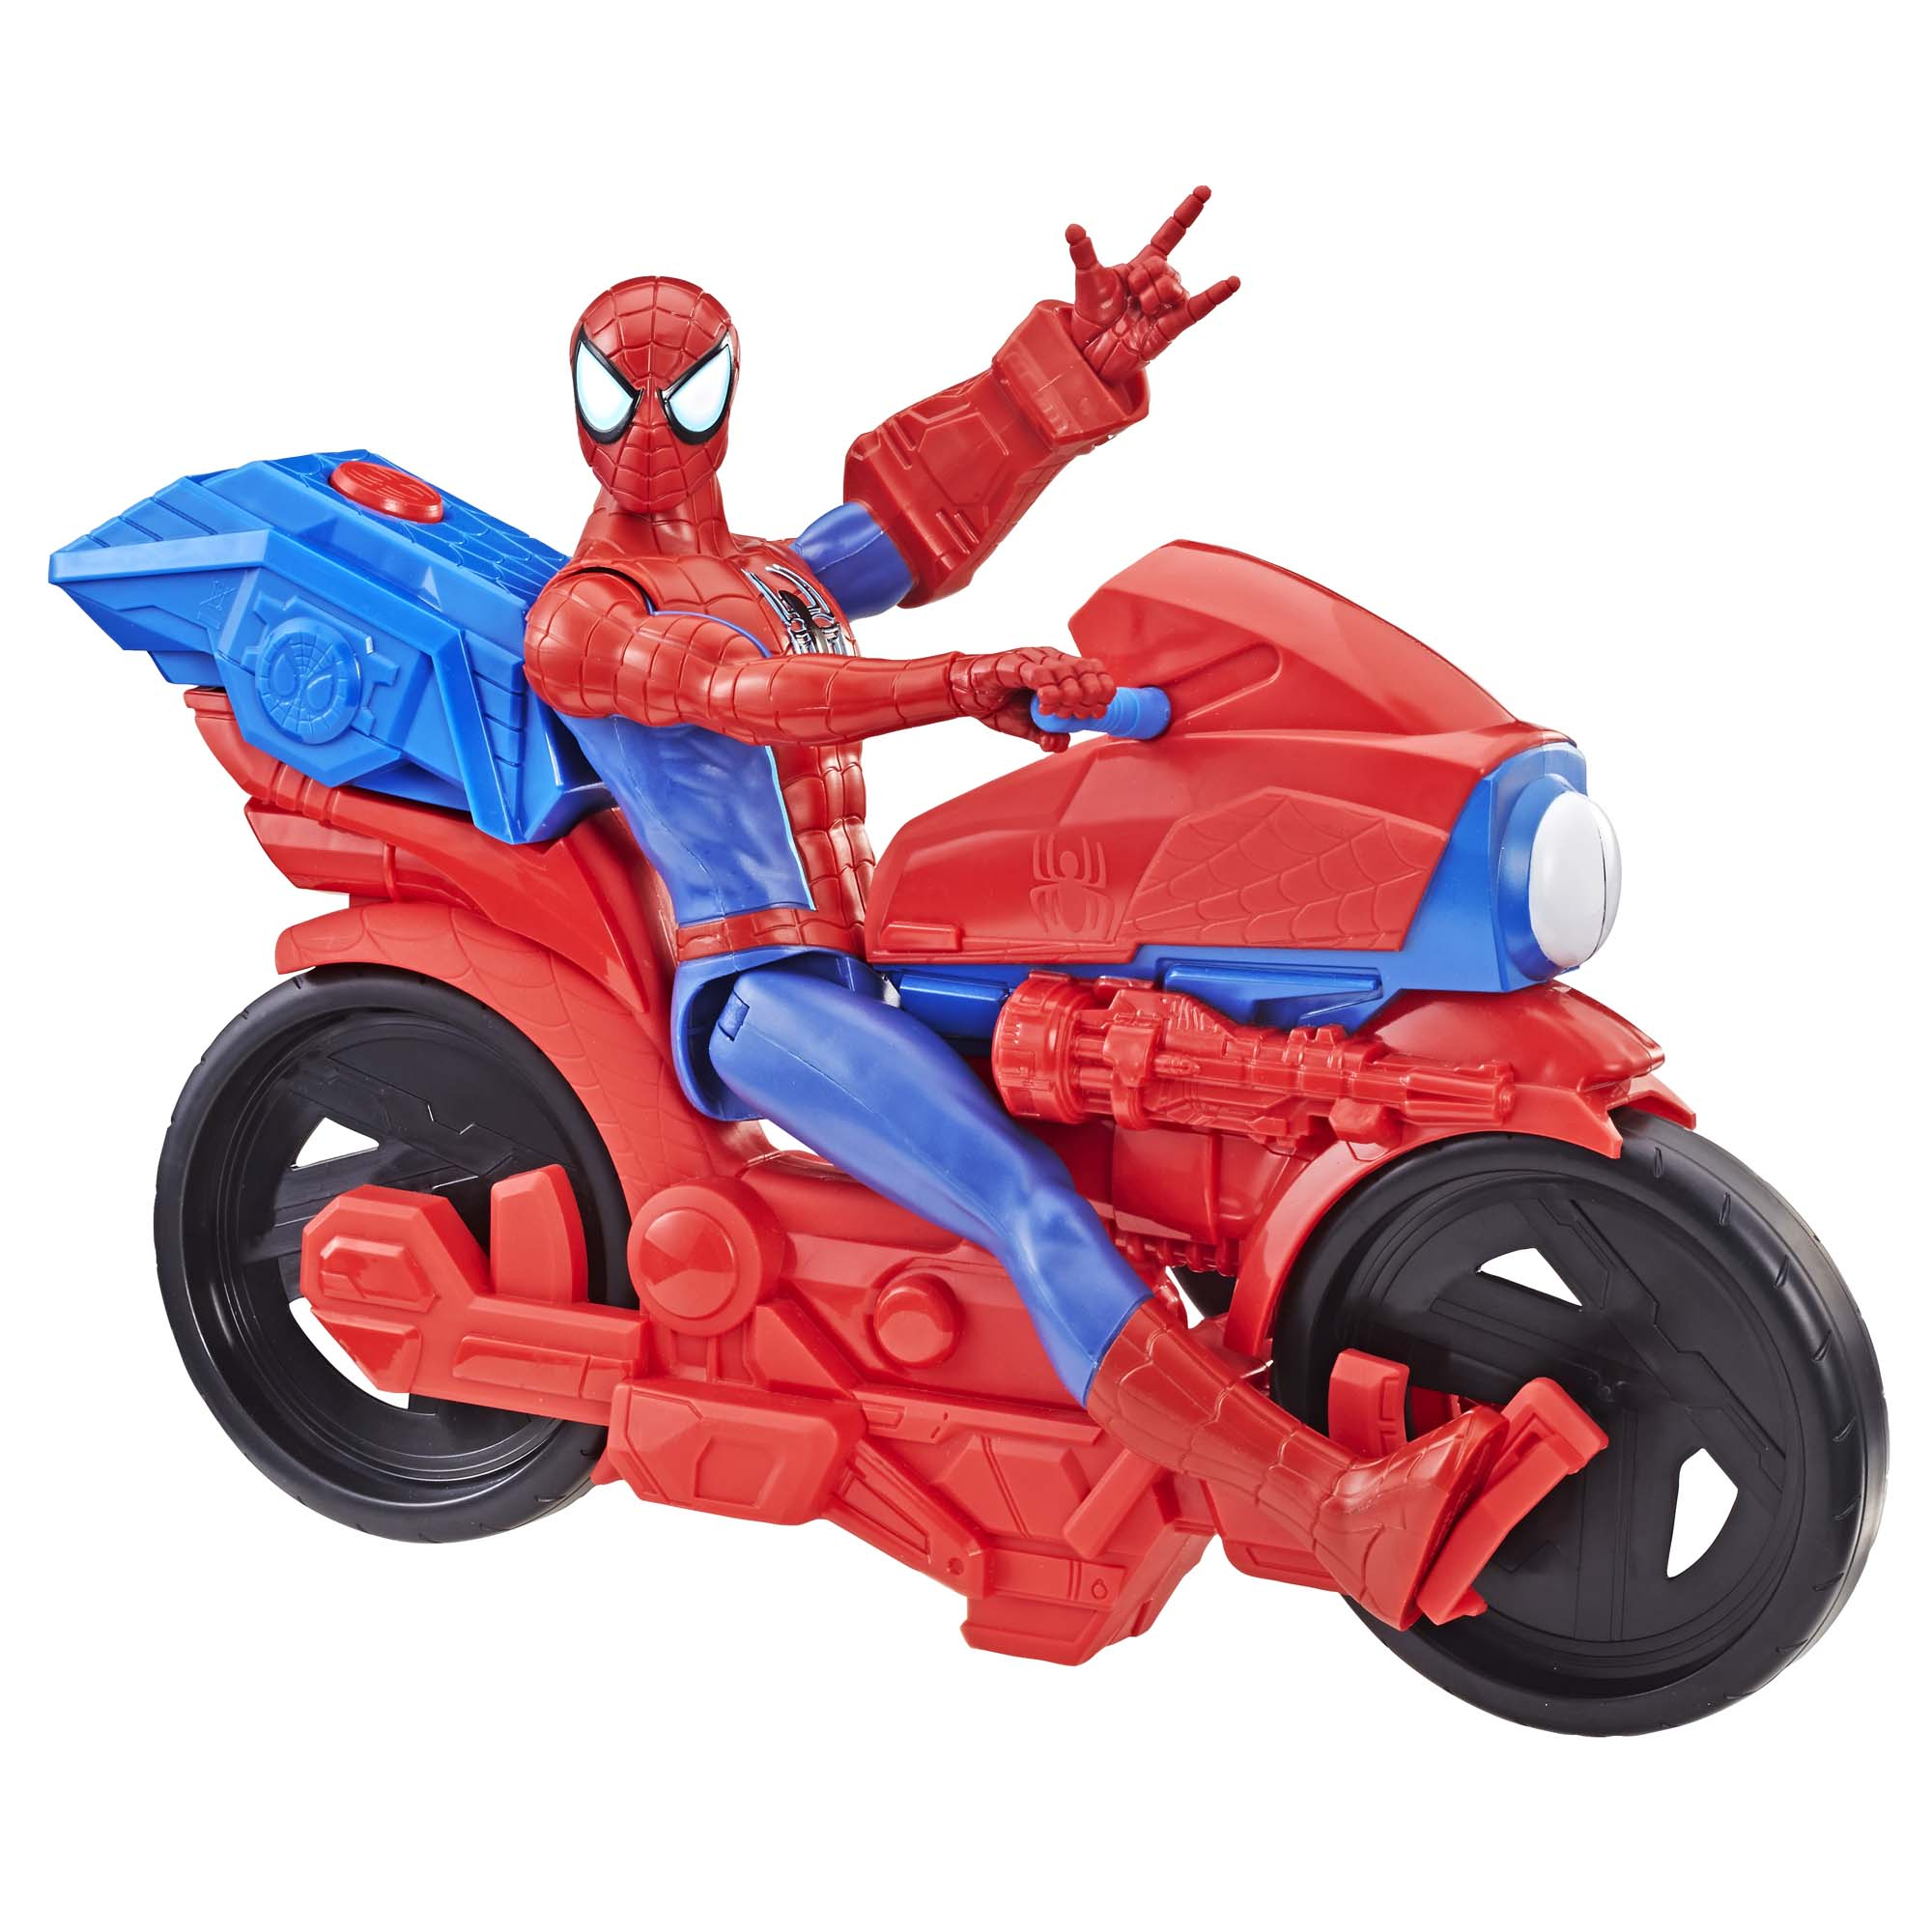 Spider-Man Figure with Power FX Cycle Plays Sounds and Phrases